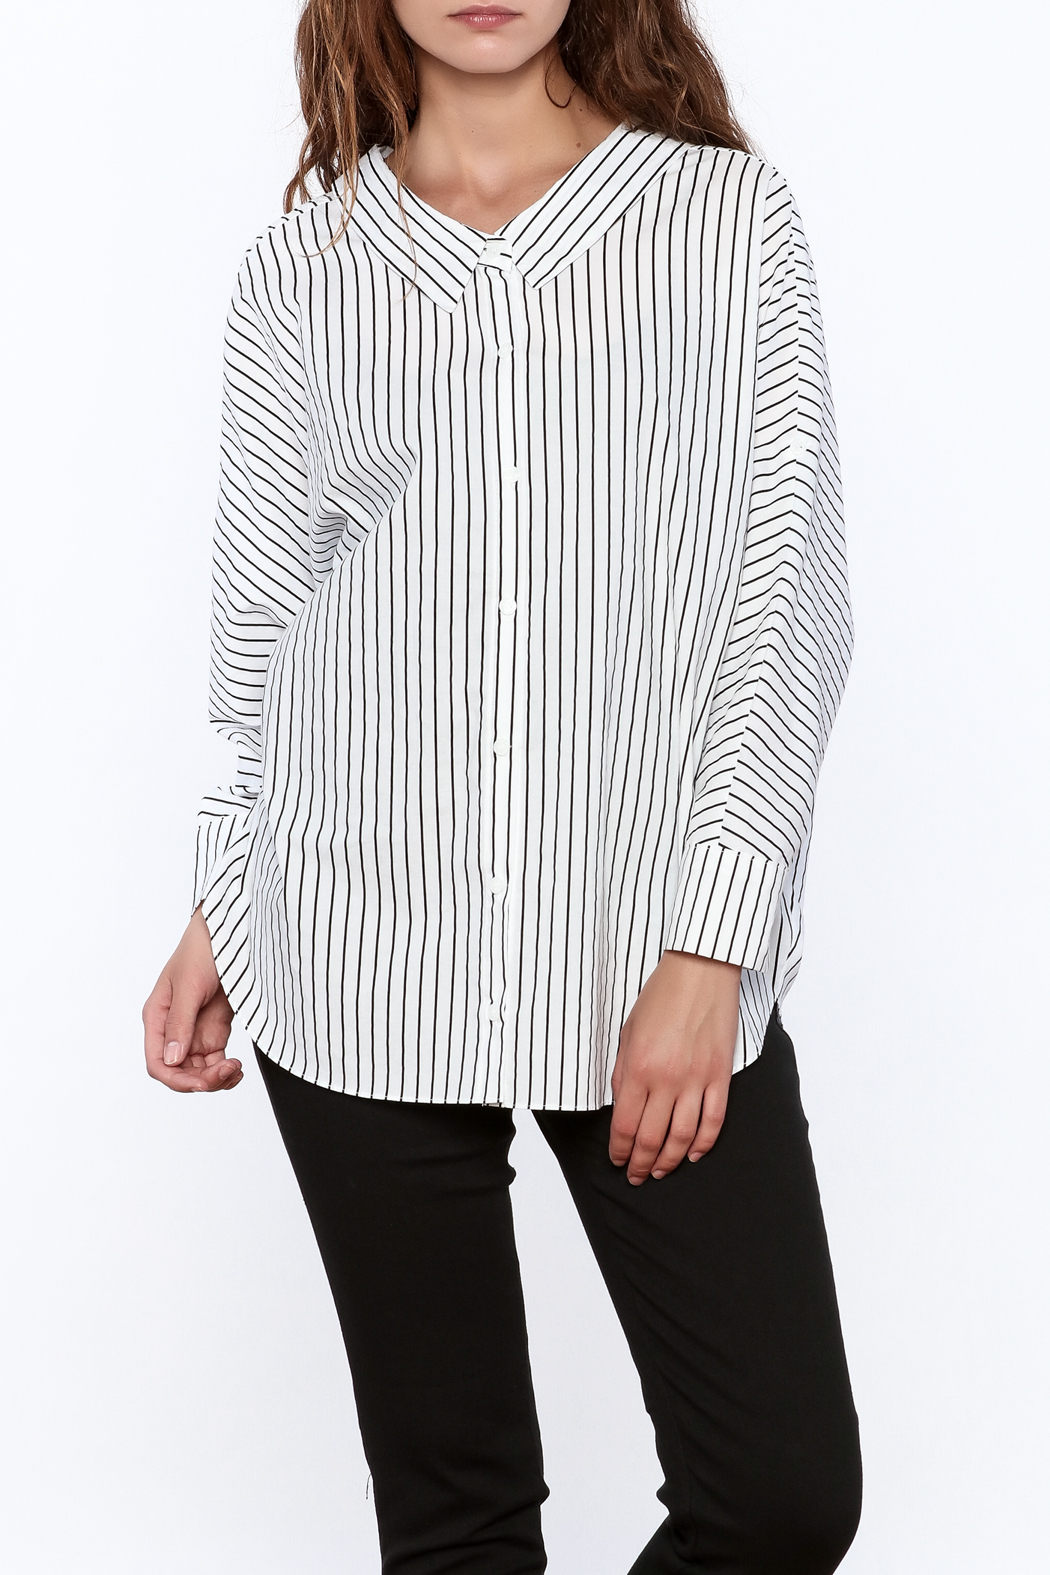 Pinkyotto Stripe Print Long Top - Main Image